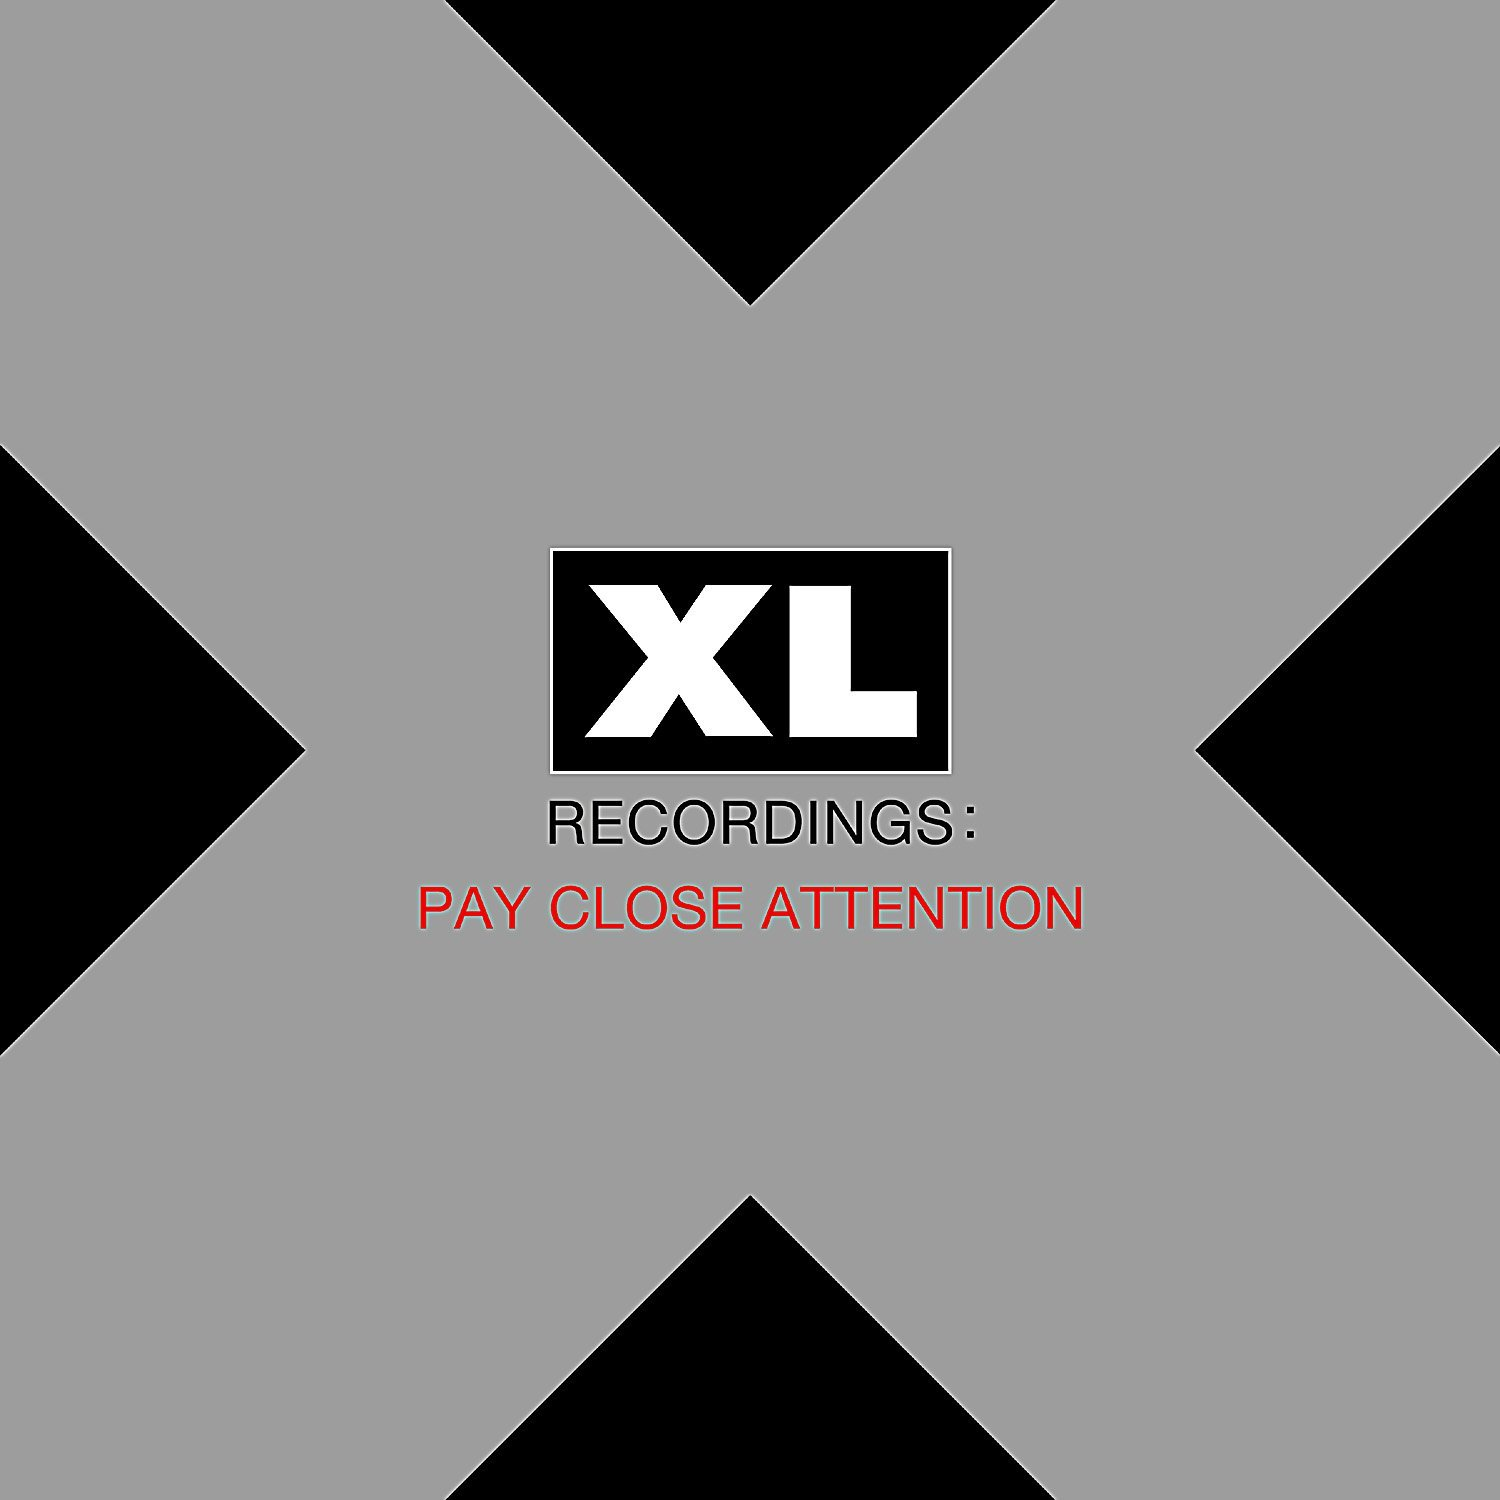 debut albums and pay close attention Luca mar 157 likes 5 our debut album exit hits all platforms at 12am this song made us stop what we were working on and pay close attention.